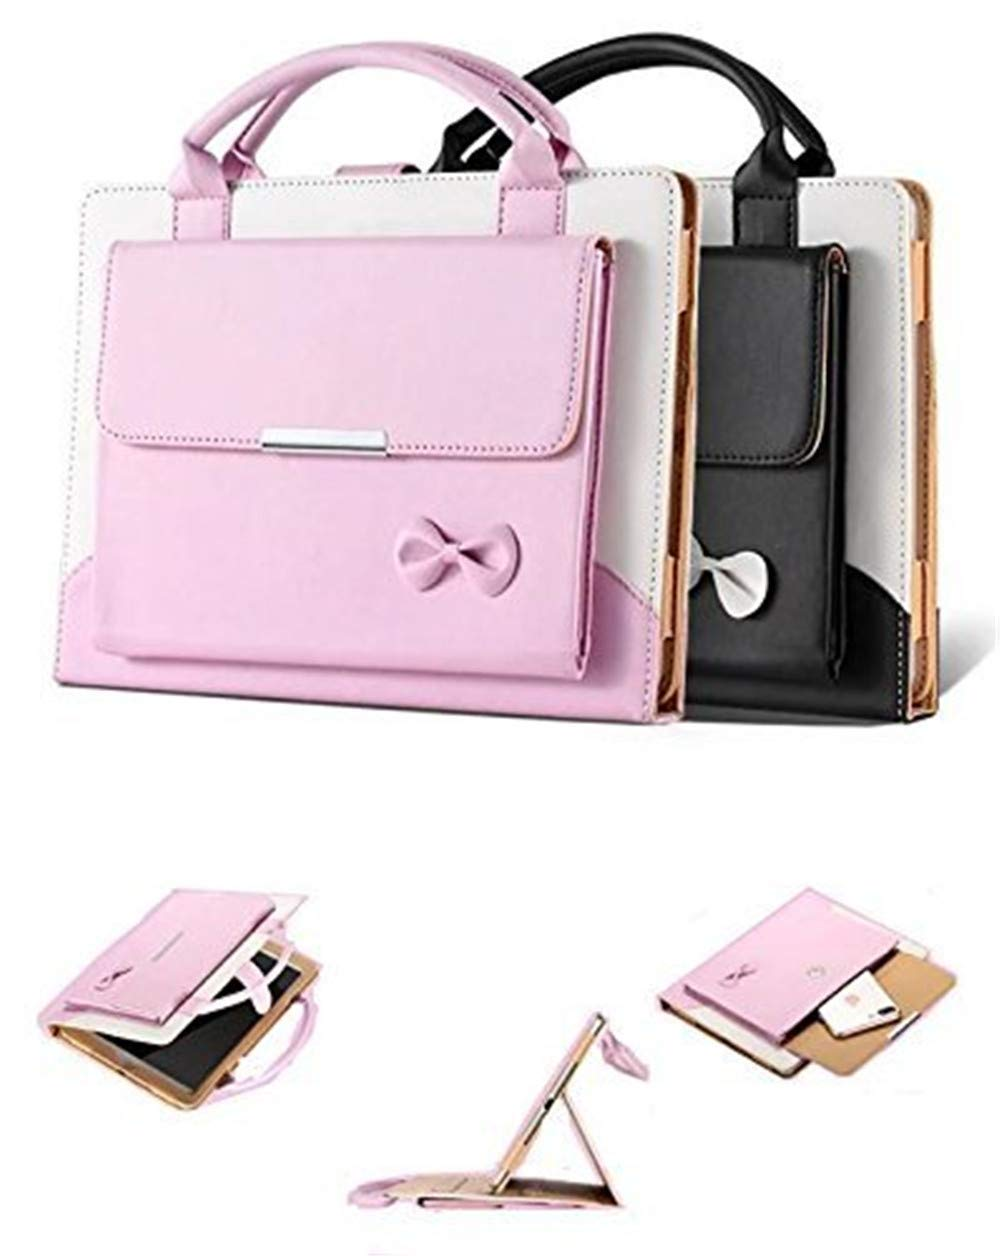 Businda iPad 9.7 2018/2017 Case, Portable Handbag Style Cute Bowknot Design Viewing Stand Carrying Sleeve with Auto Sleep/Wake Function for New iPad